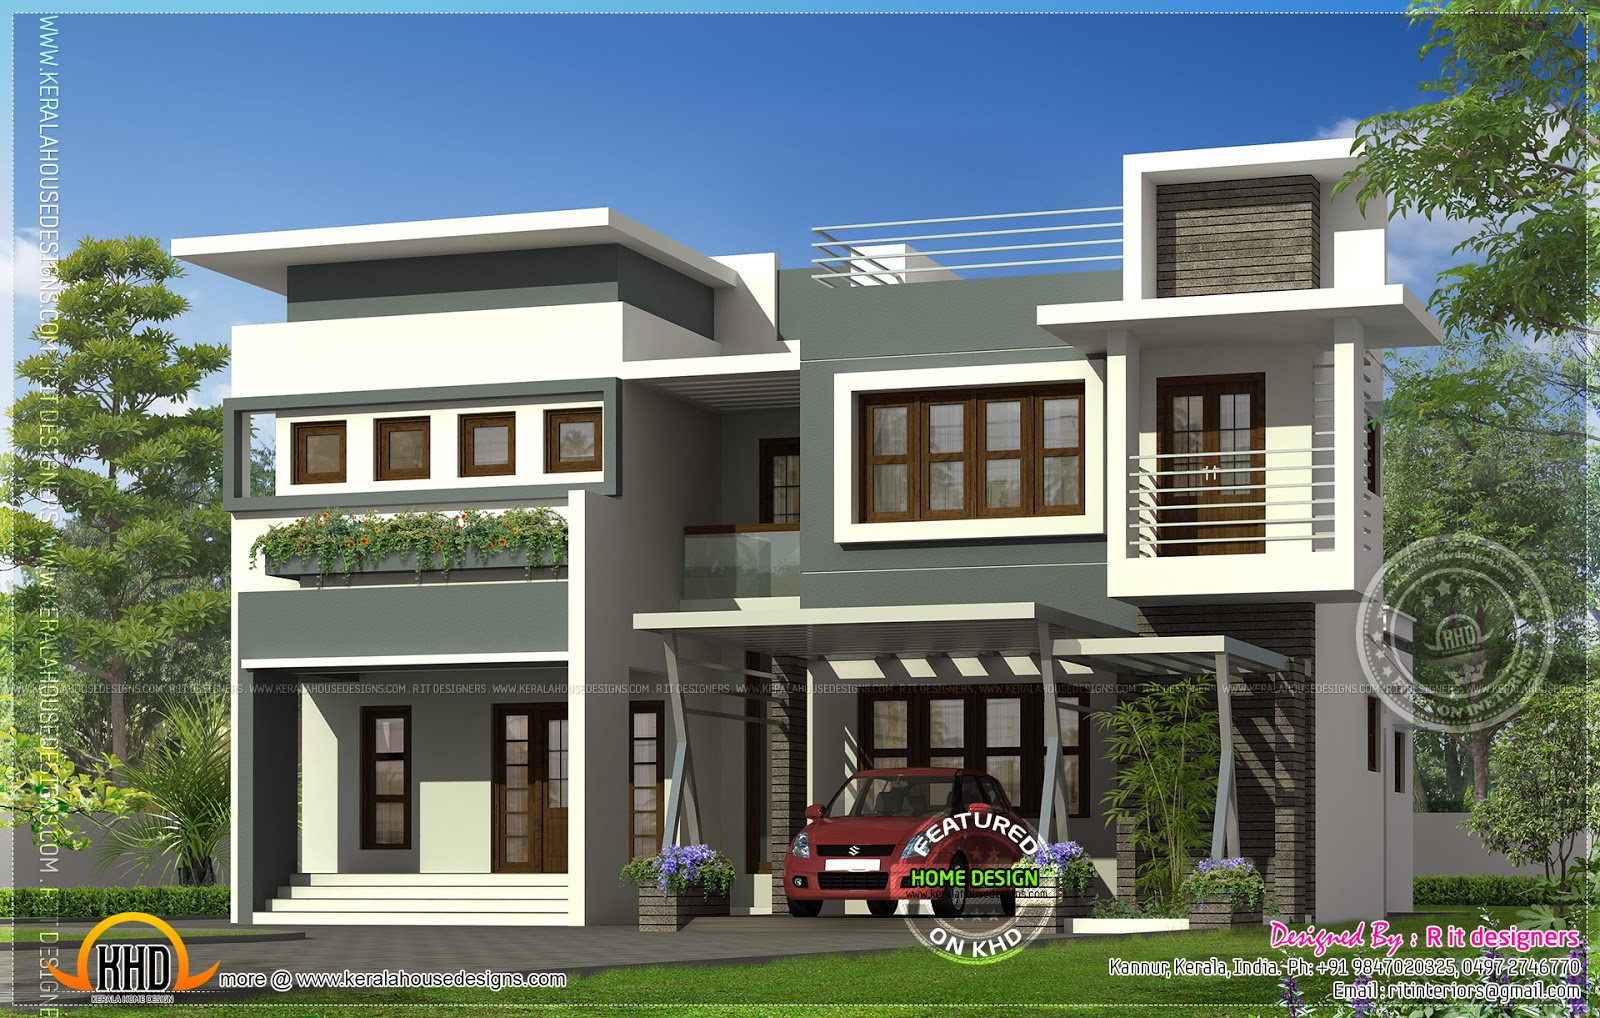 Modern contemporary residence design home kerala plans Modern residence